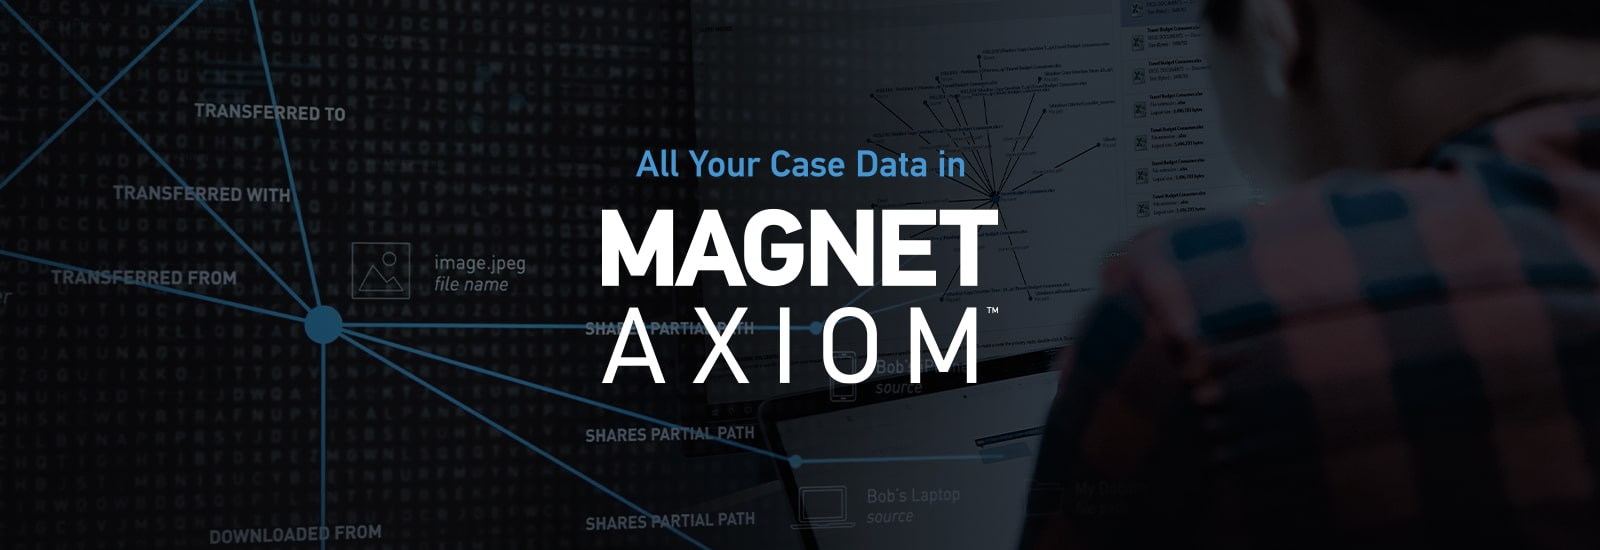 AXIOM All in One - Analytics